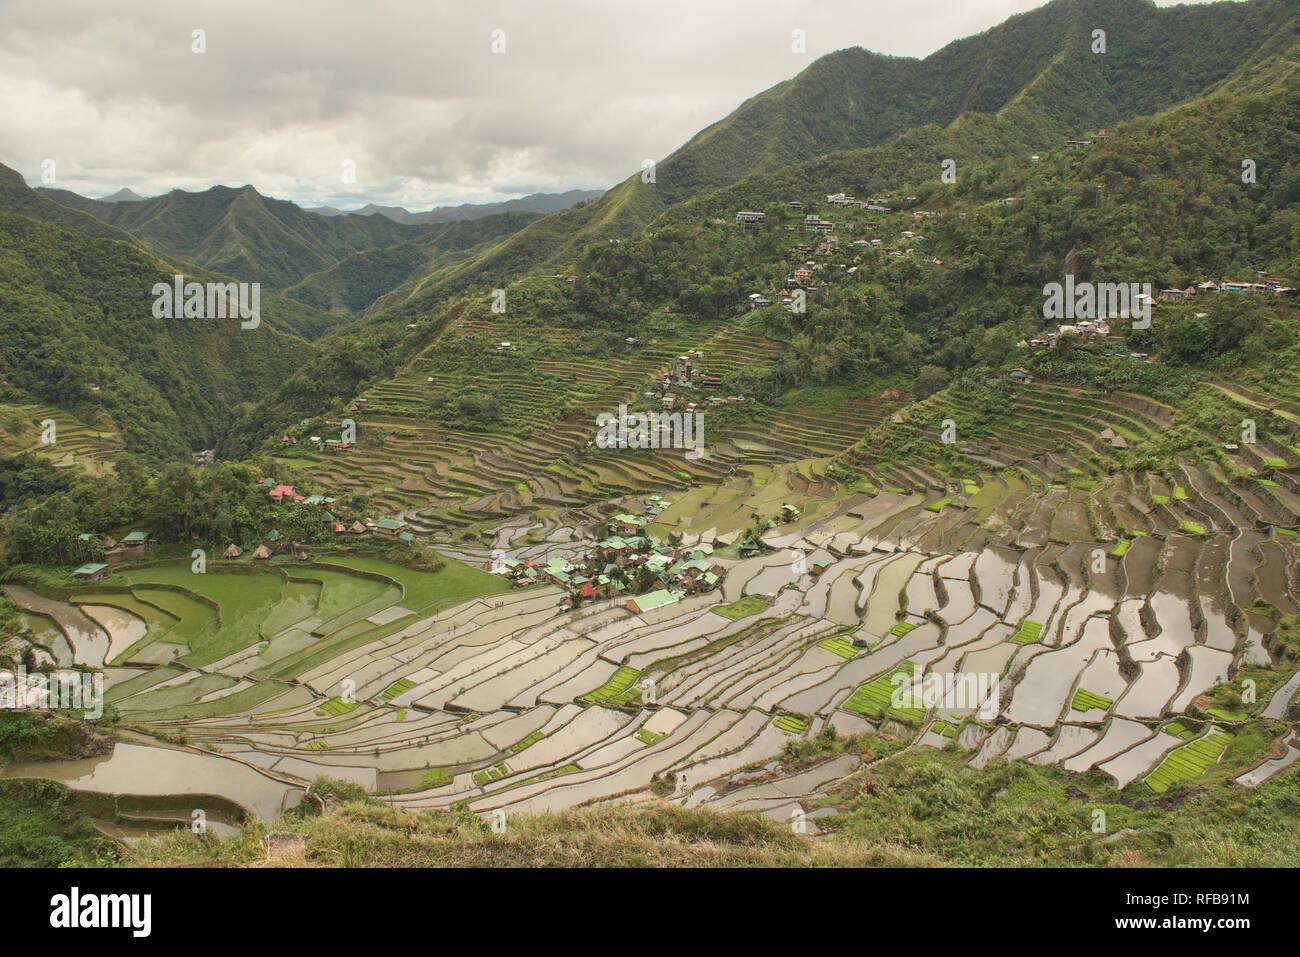 The amazing UNESCO rice terraces of Batad, Banaue, Mountain Province, Philippines - Stock Image